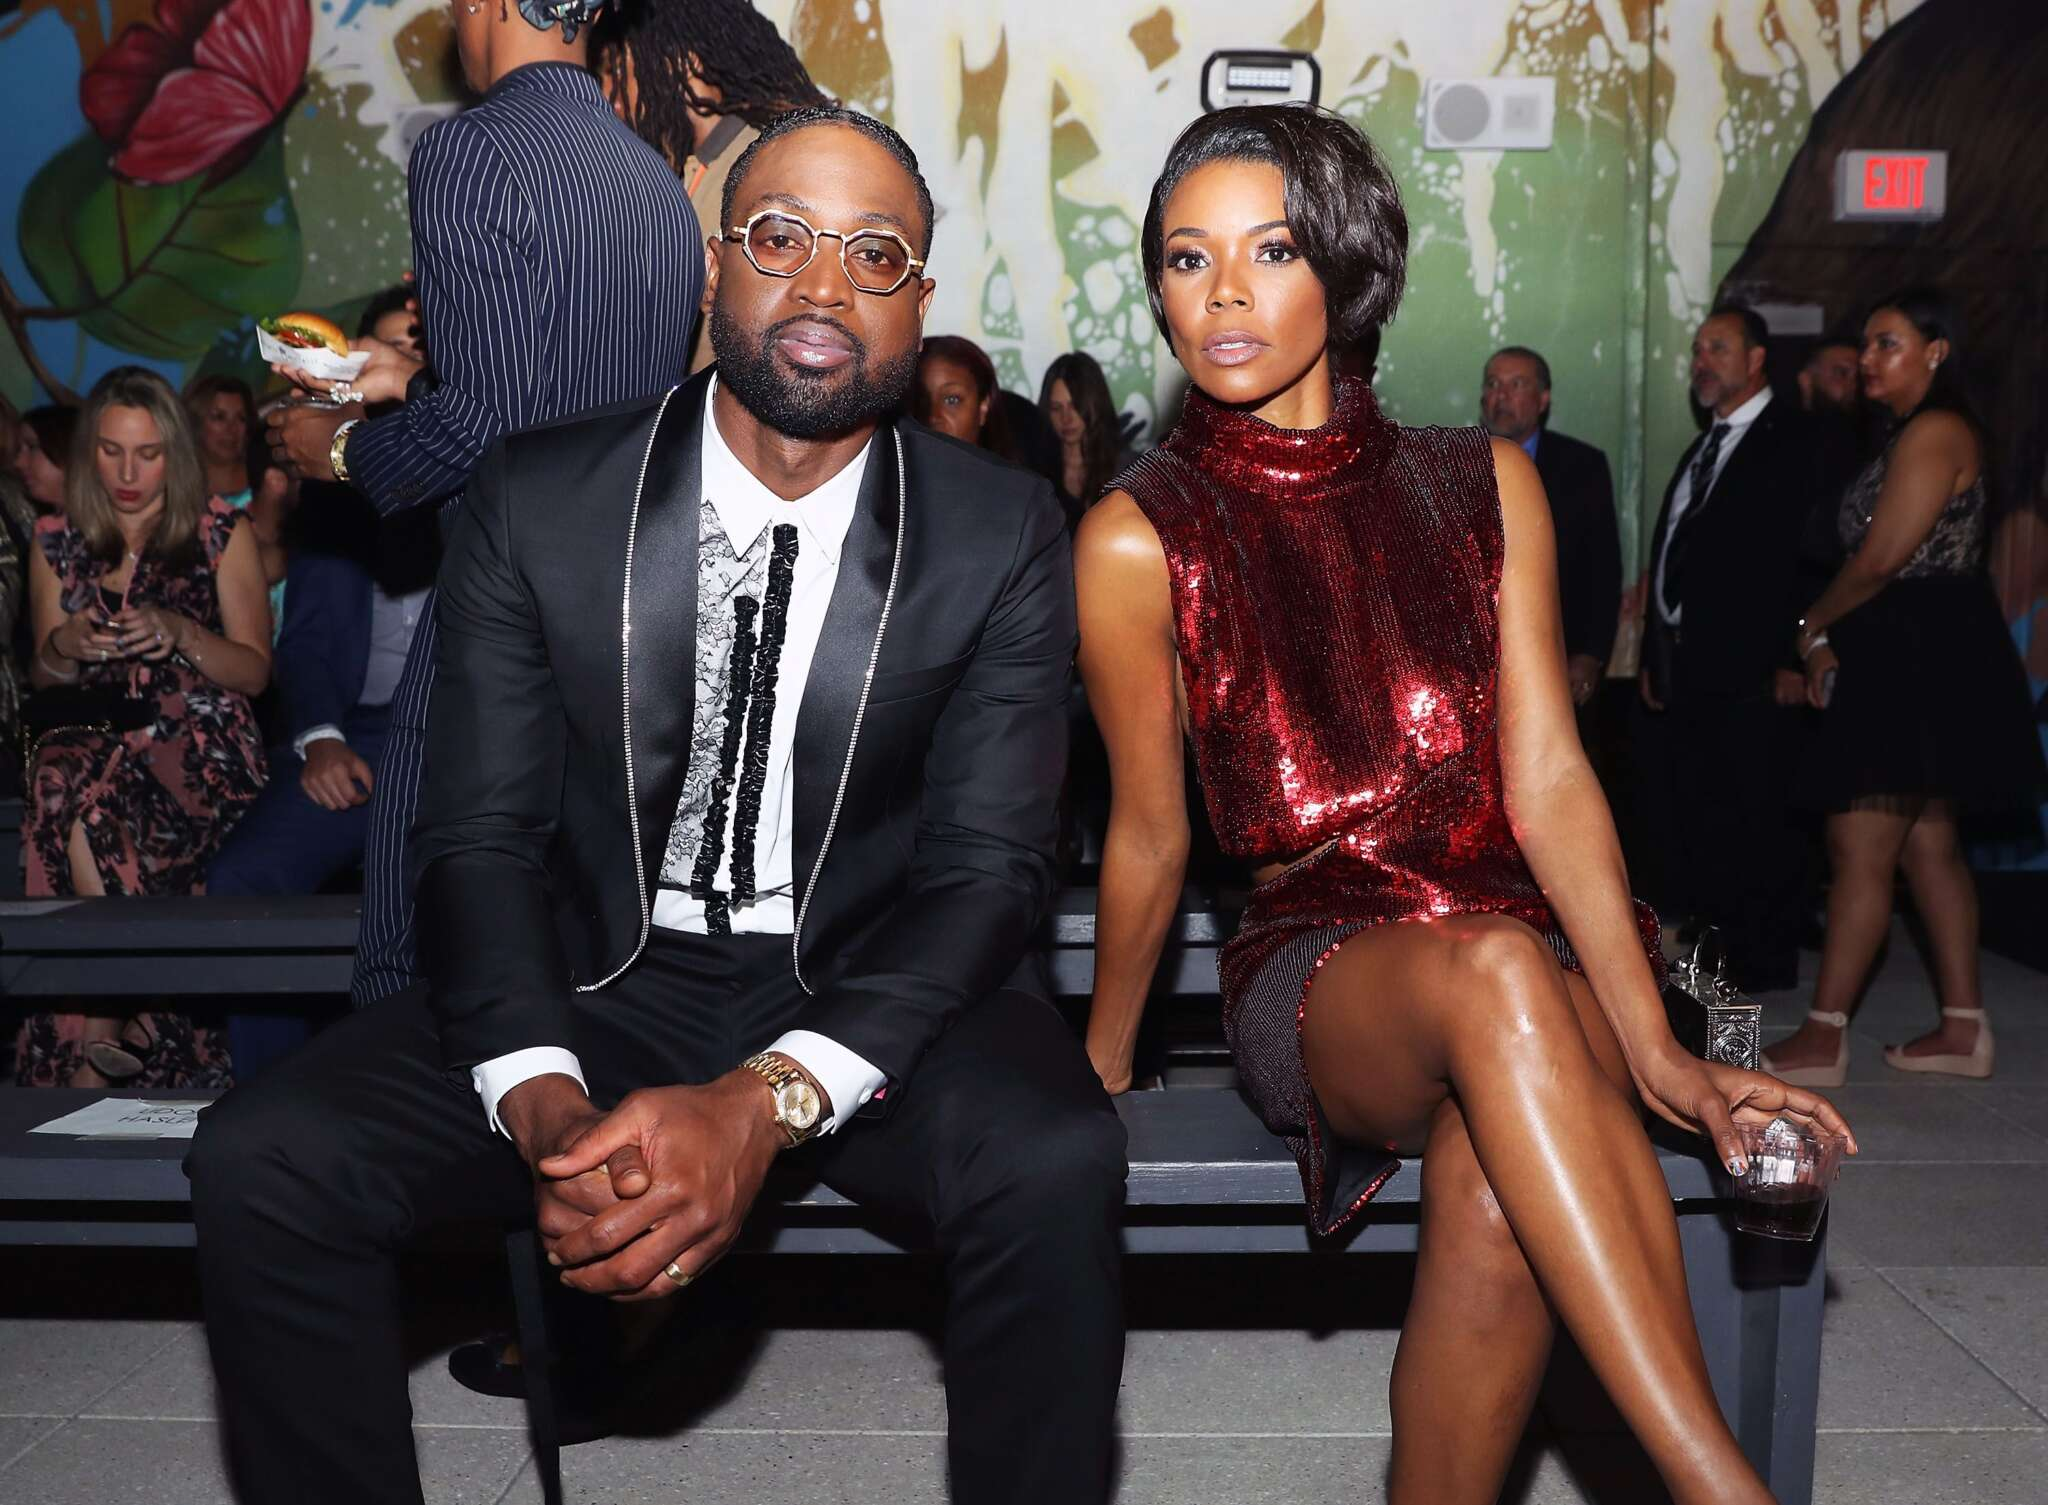 gabrielle-union-poses-with-dwyane-wade-talking-about-parenthood